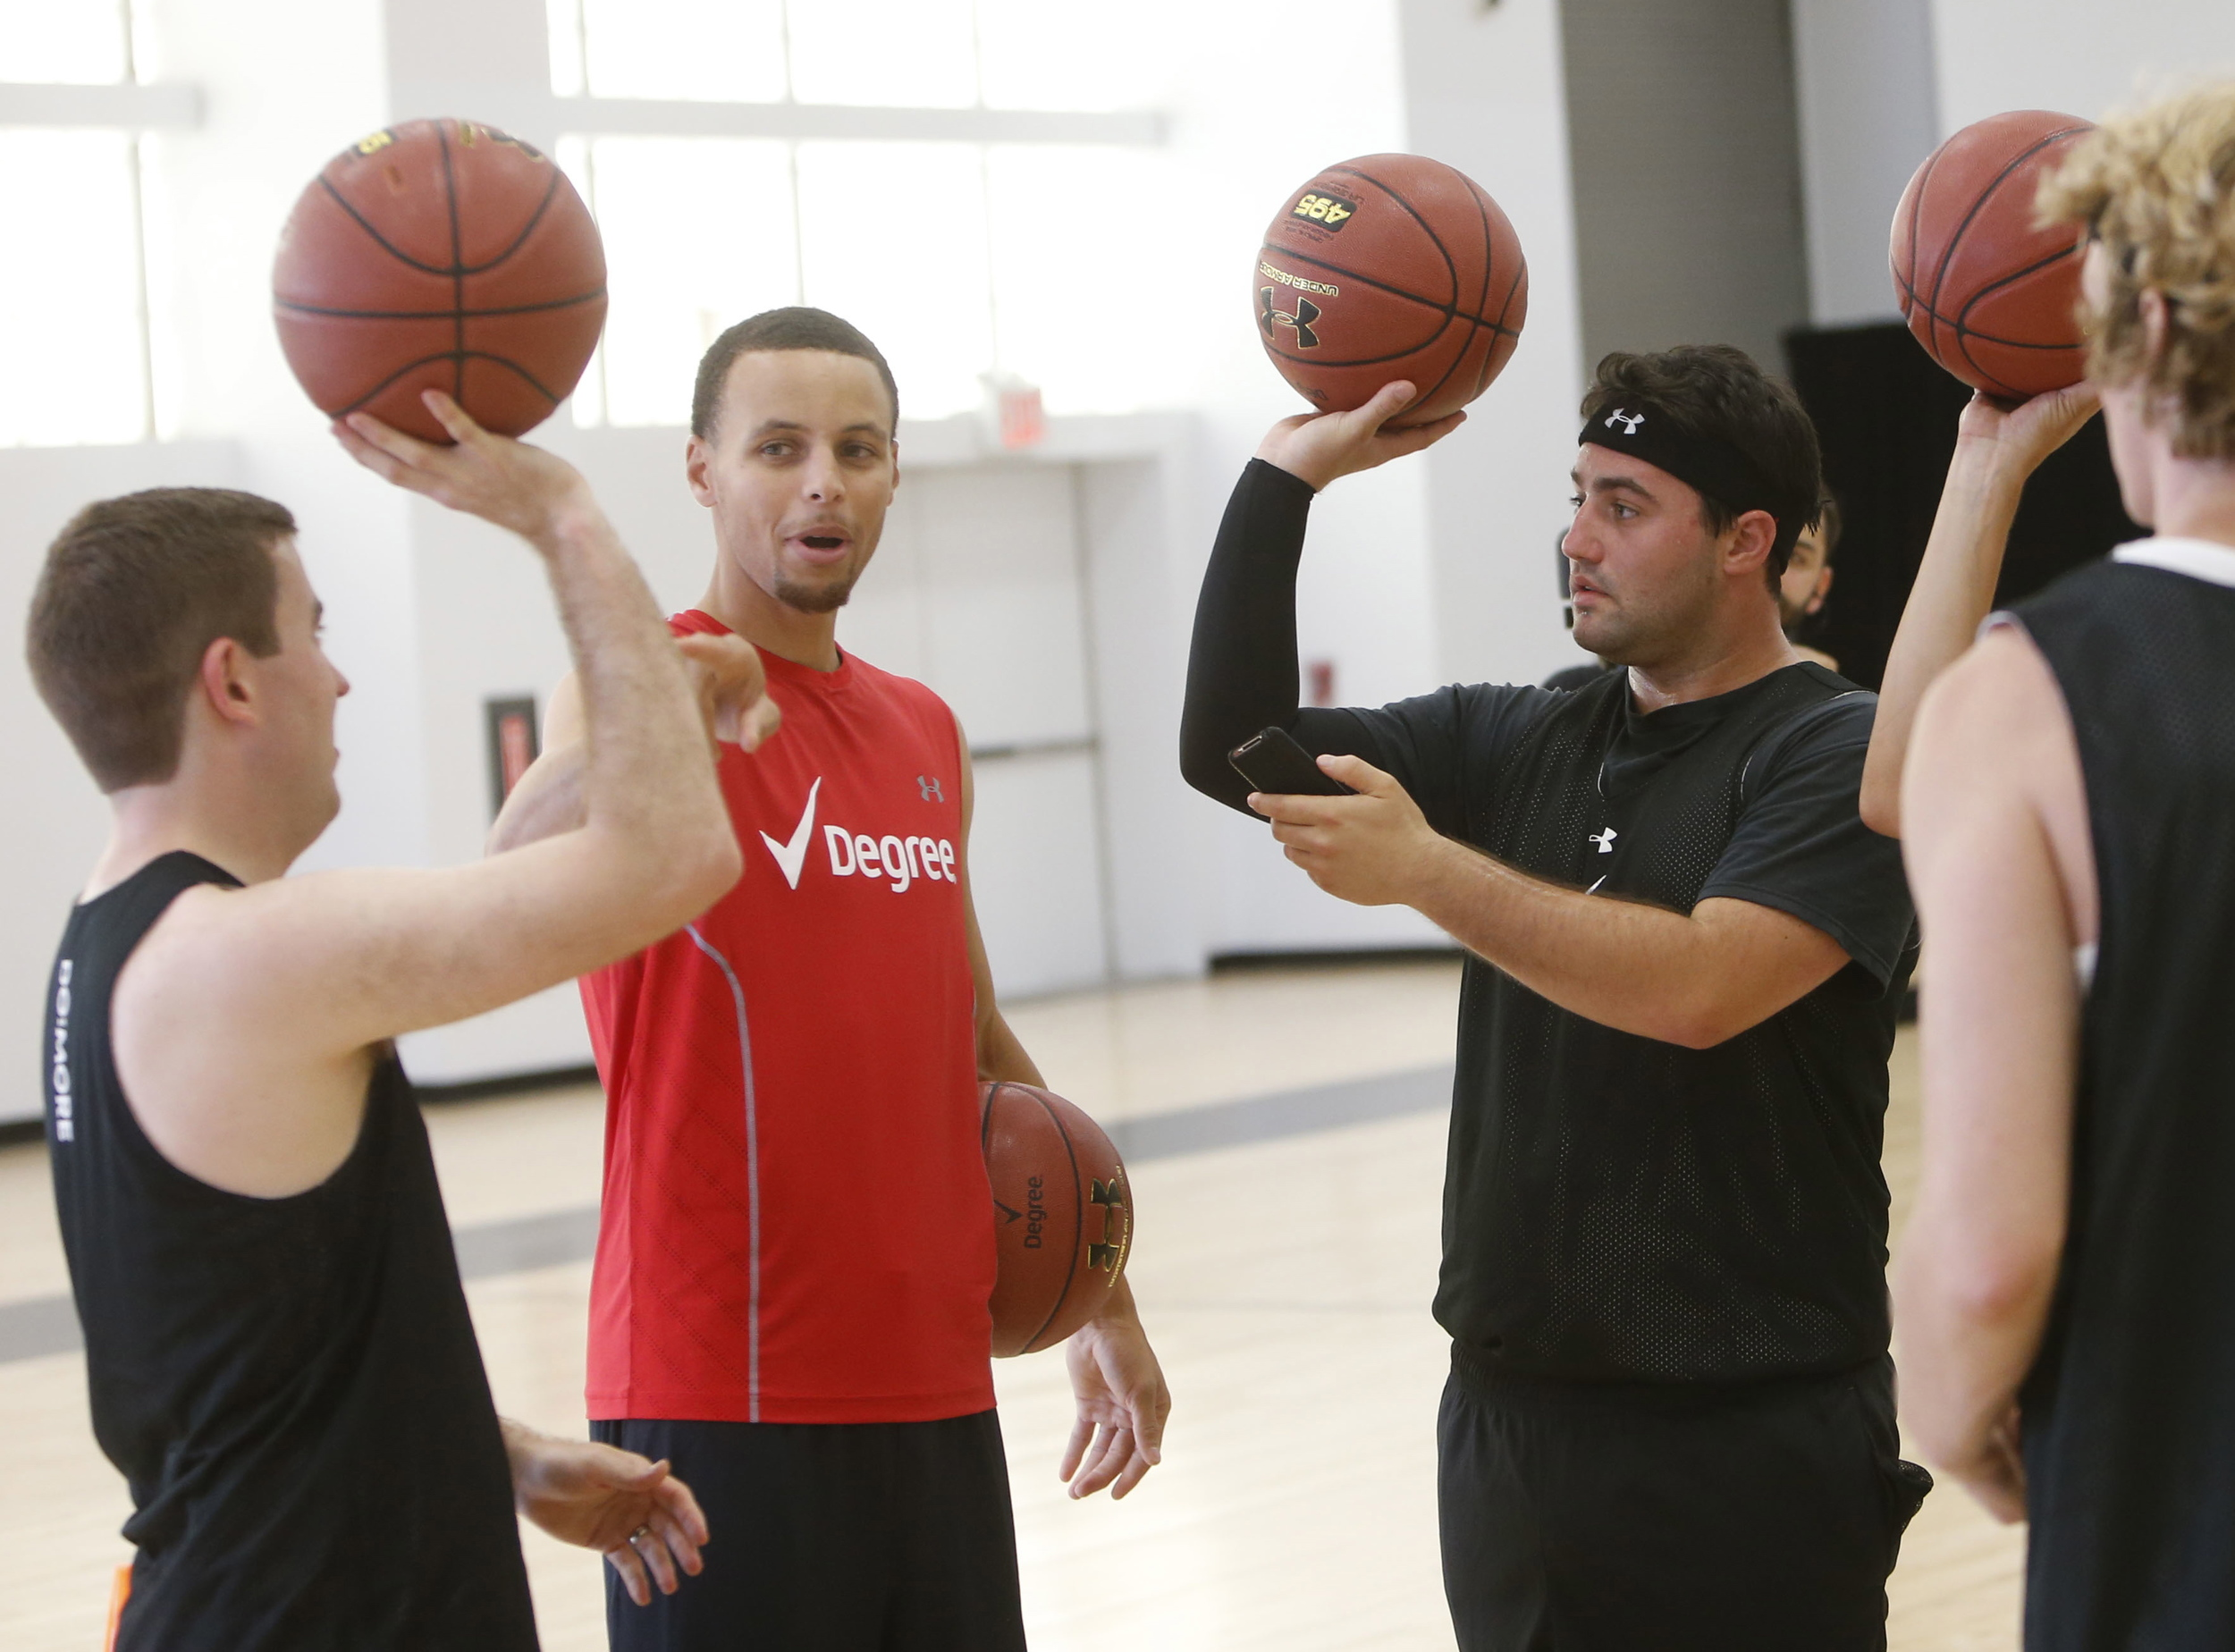 Shooting around with Steph Curry for Maxim.com. We did a 3-point competition. I lost.